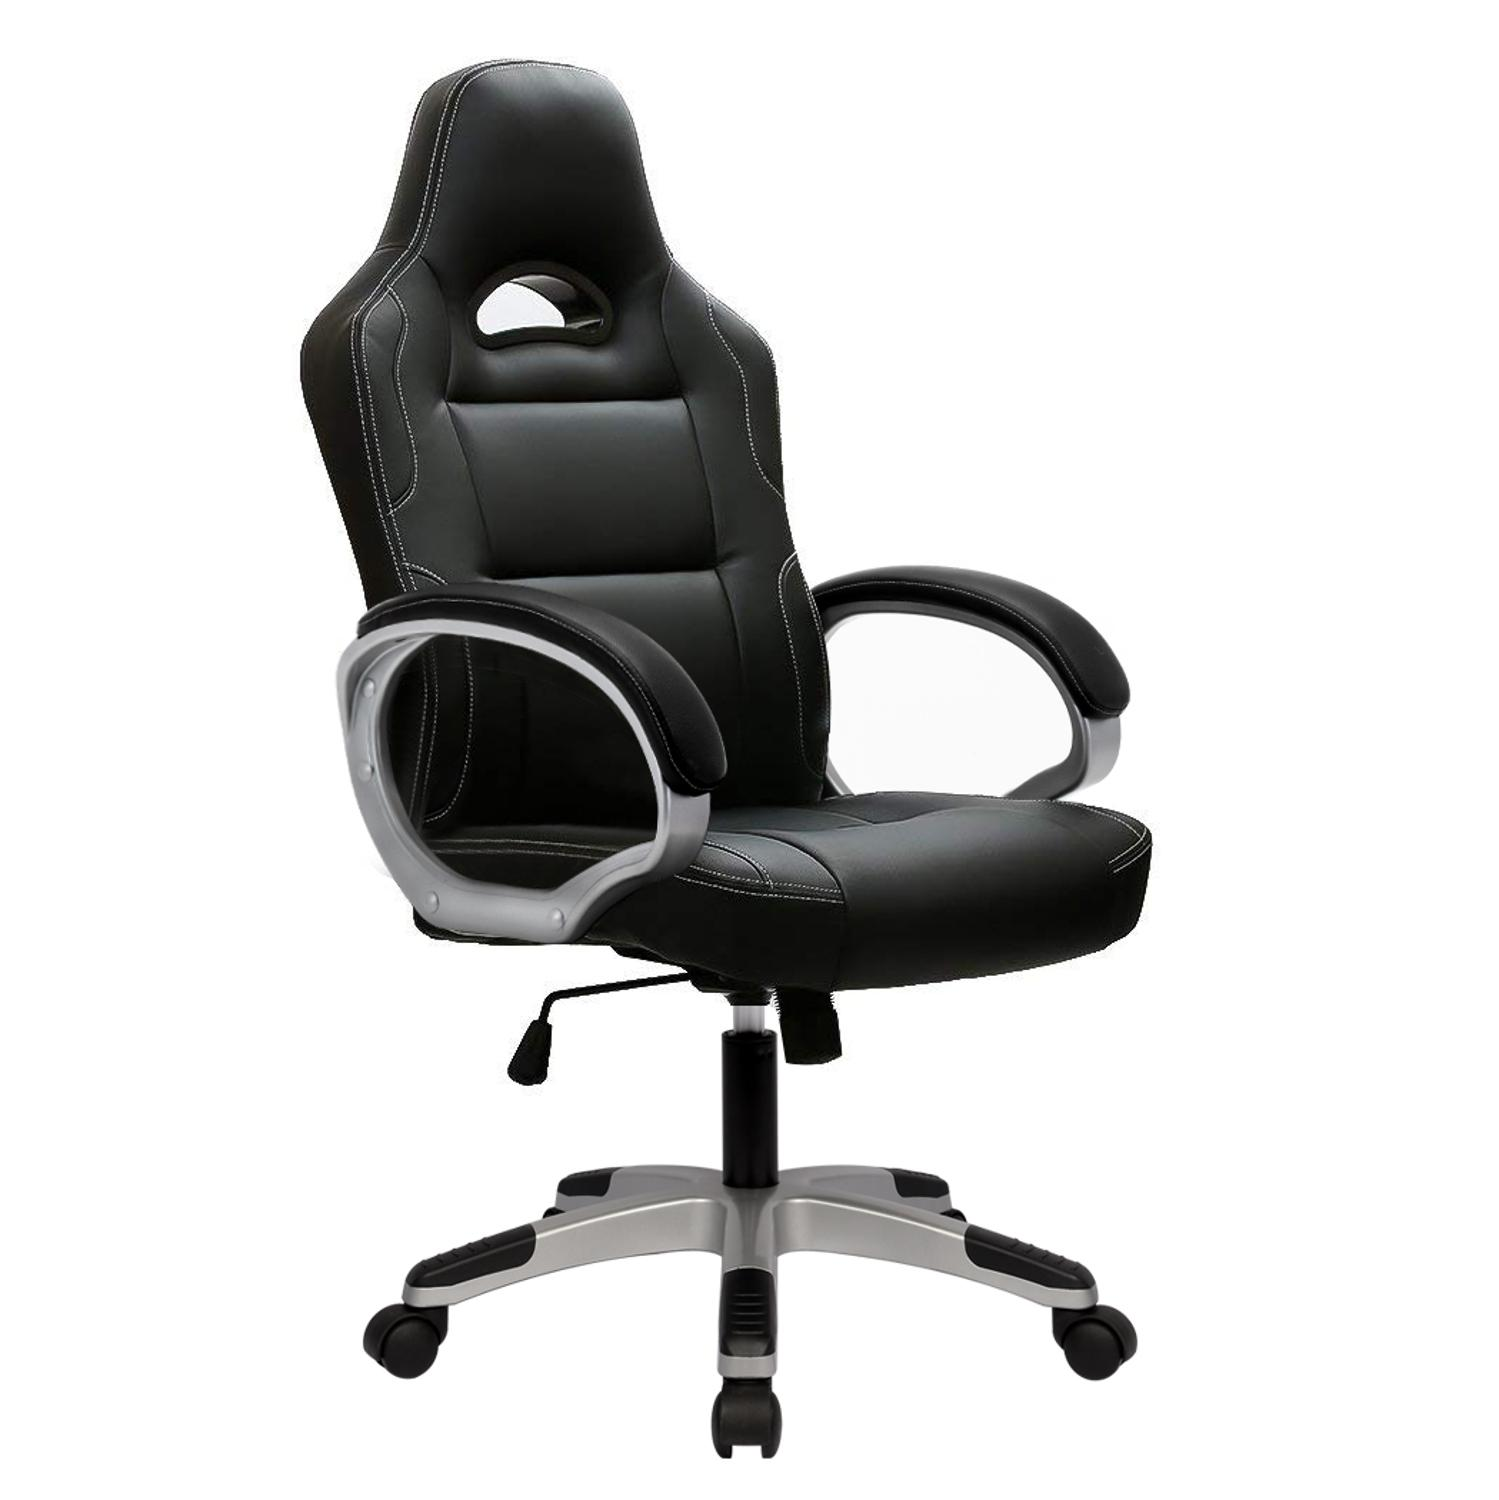 Gaming Computer Chair Ergonomic Office PC Swivel Desk Chairs For Gamer Adults And Children With Arms A35